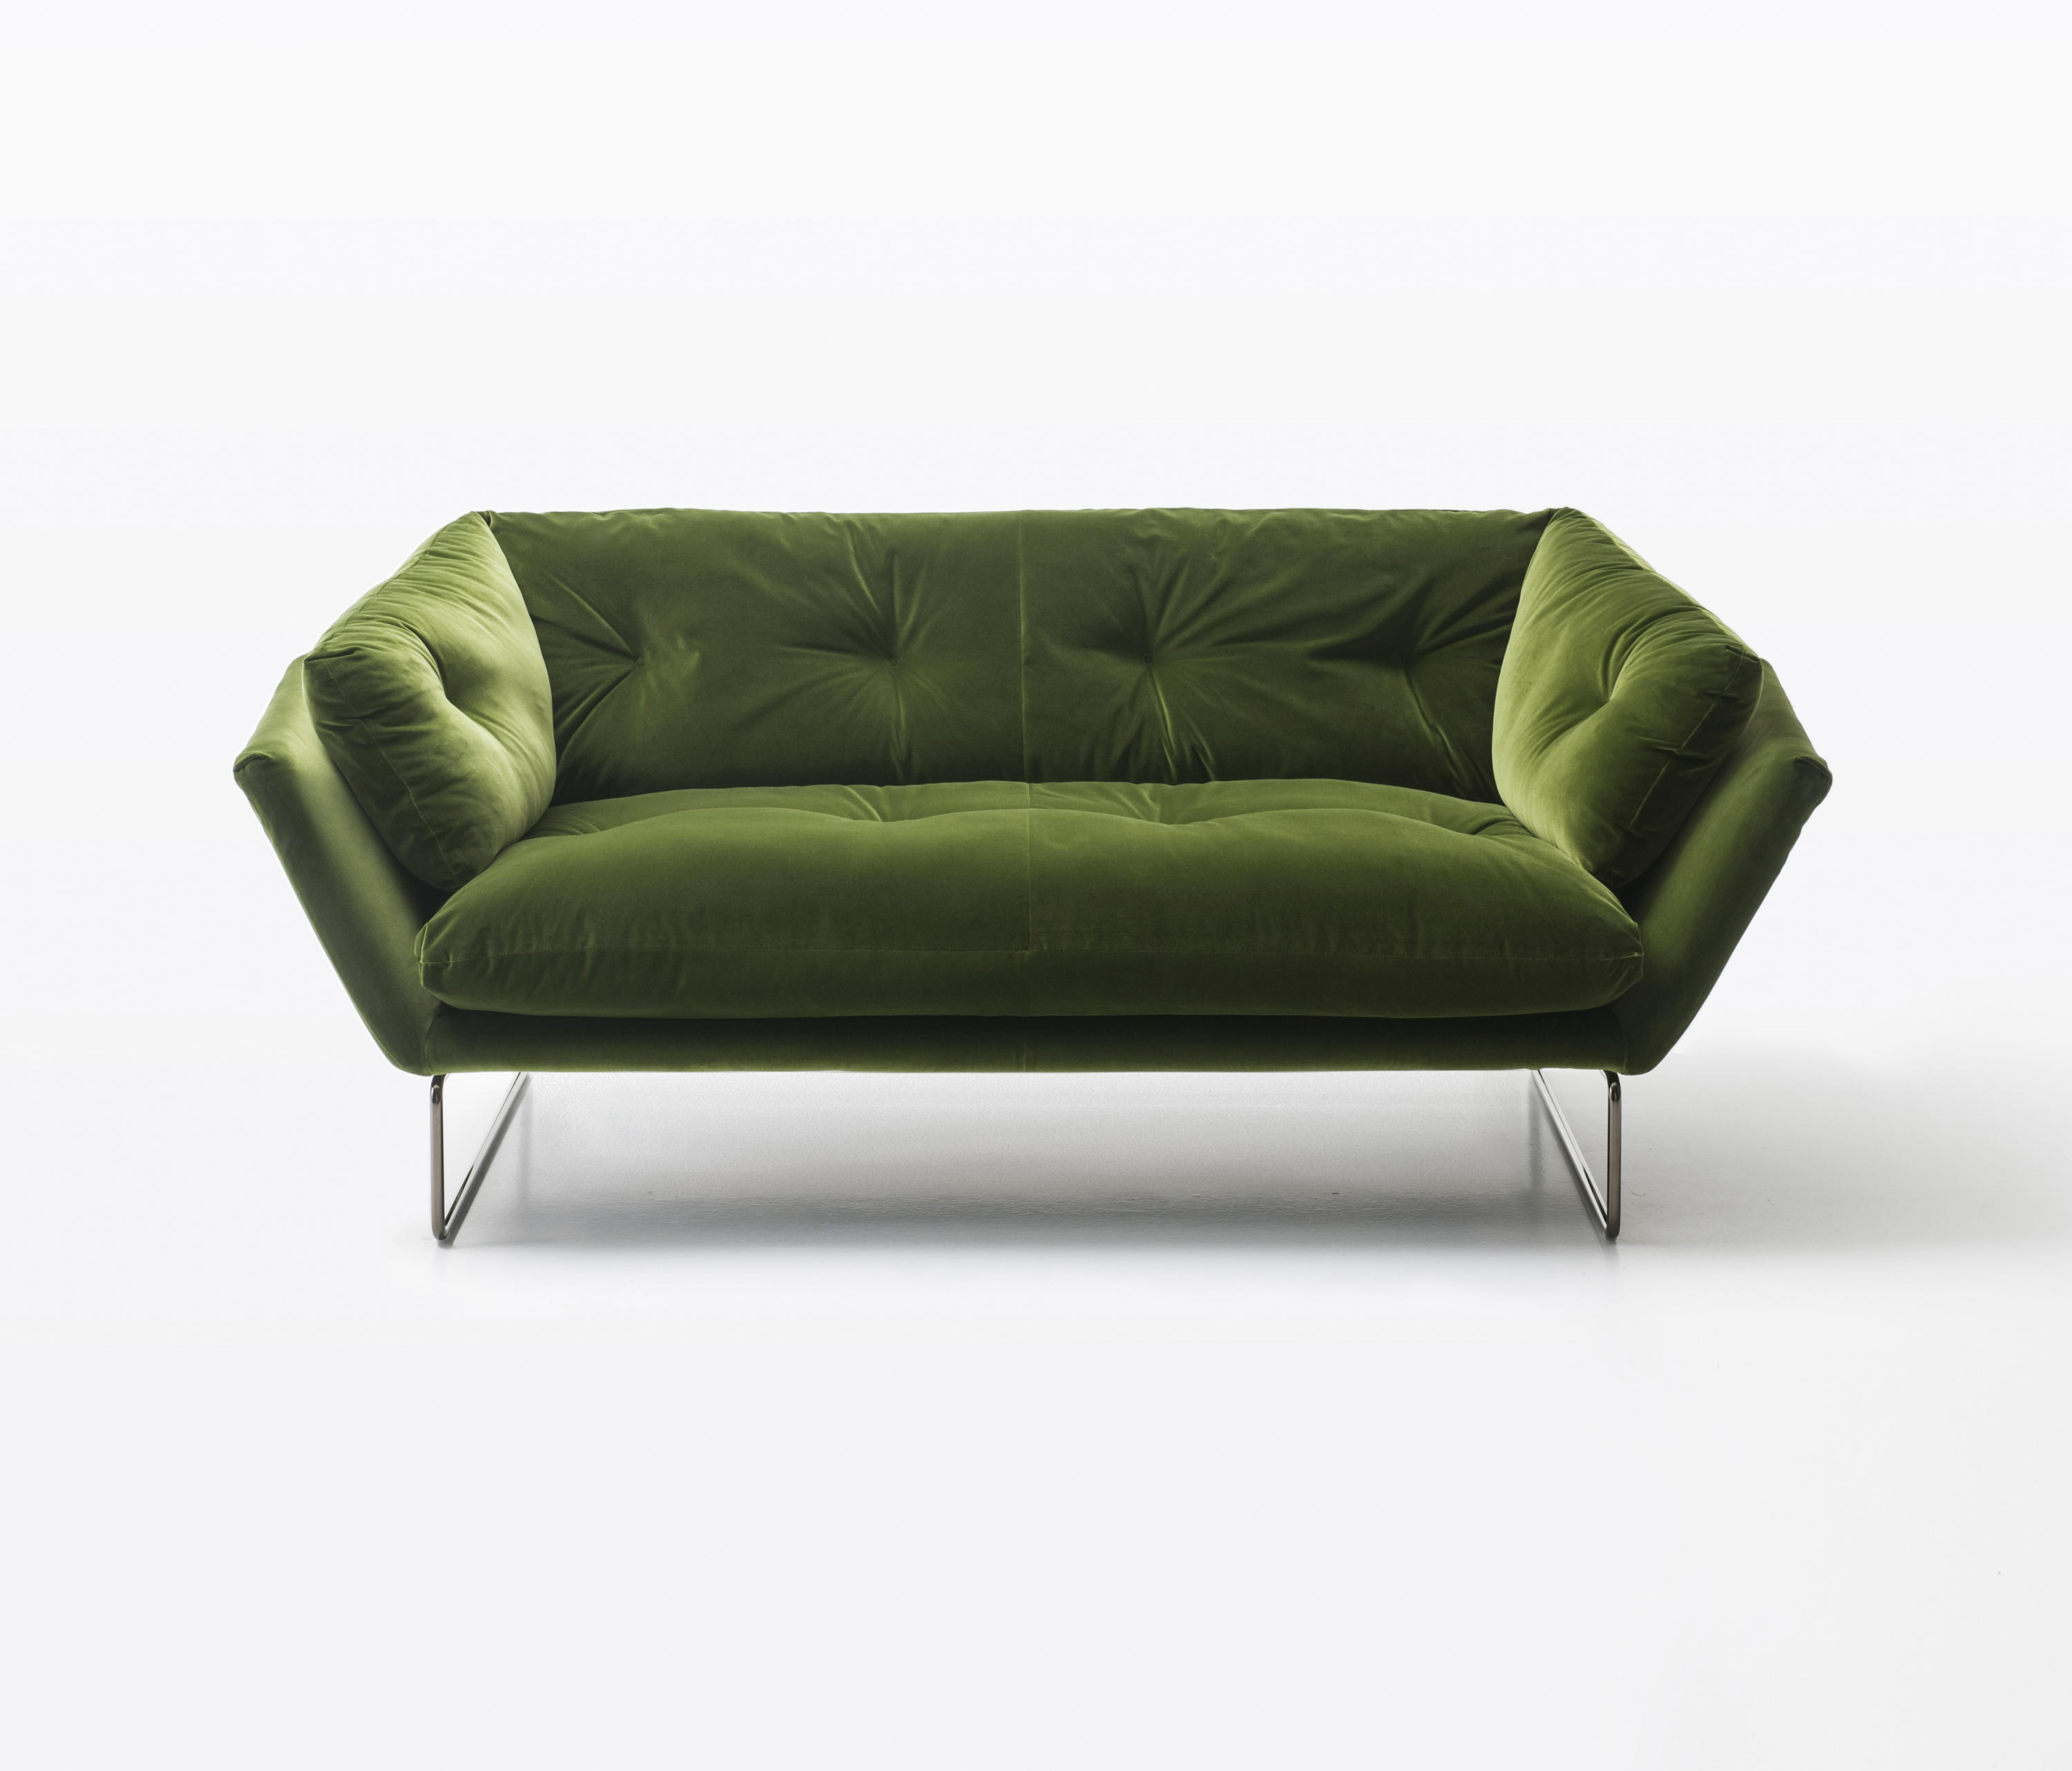 Cheap sofas in new york for Cheap new furniture